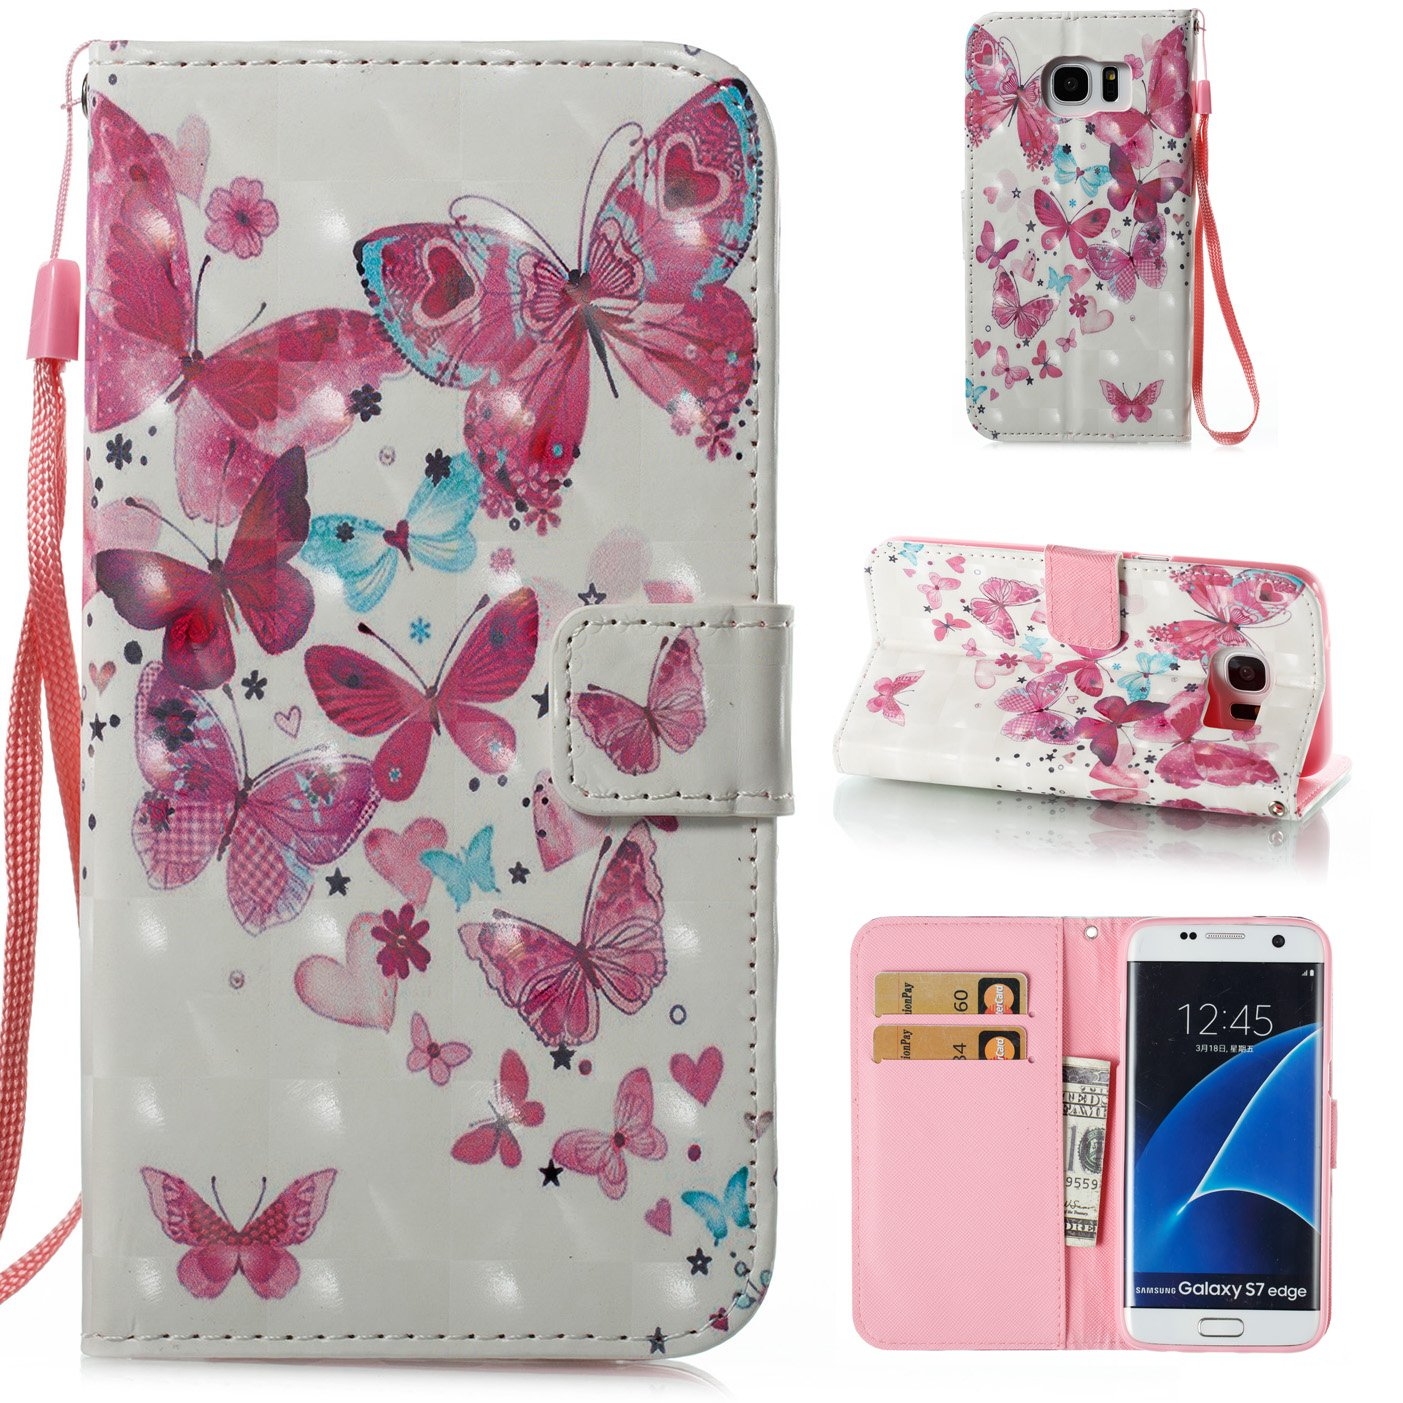 Galaxy S7 Edge 3D Phone Case,Samsung Galaxy S7 Edge Case with Fold Stand Feature,Gostyle Premium PU Leather Wallet Purple Butterfly Painted Pattern Magnetic Flip Cover with Card Slots.